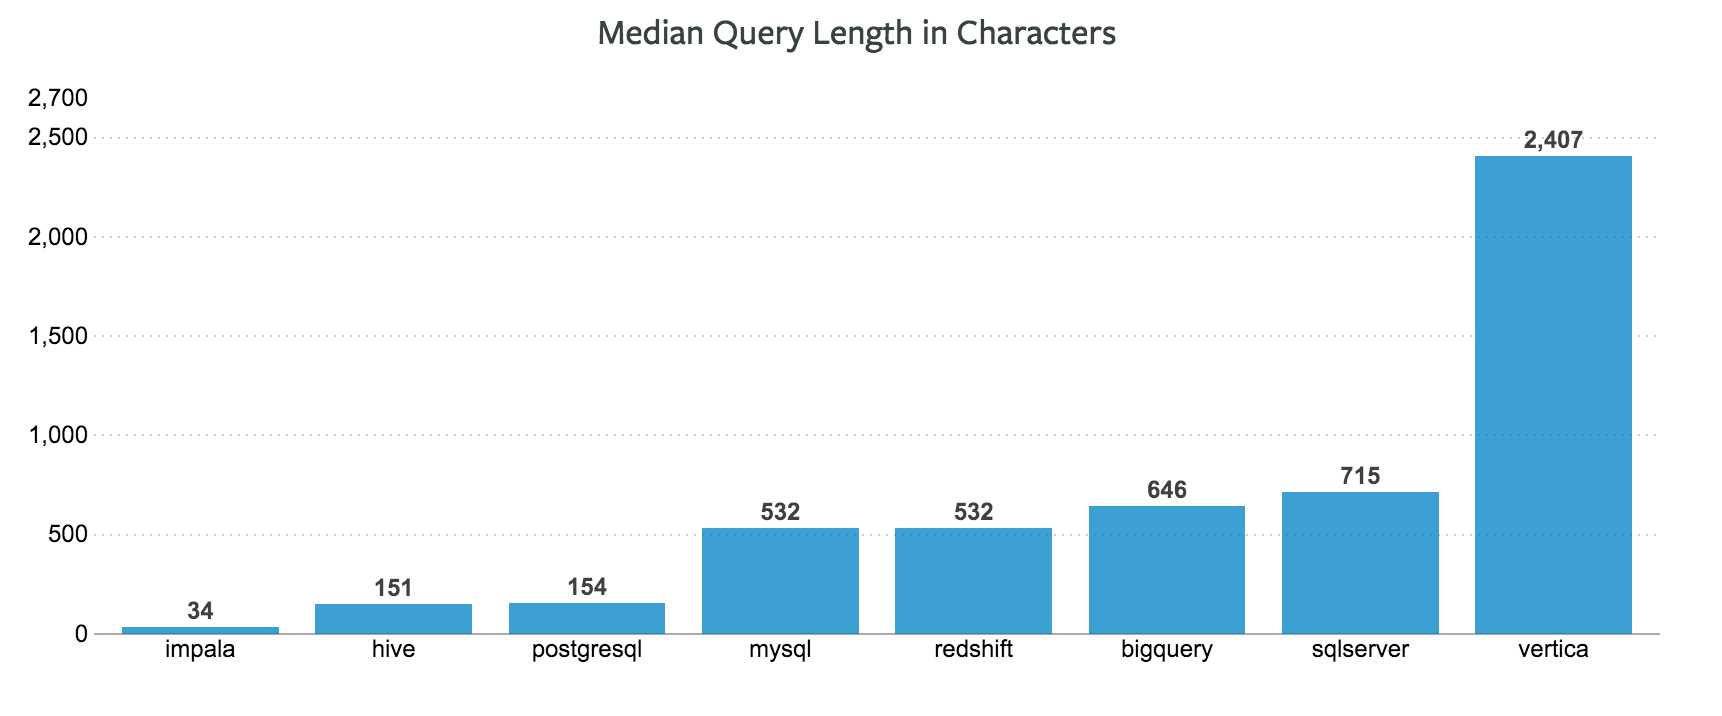 Median Query Length